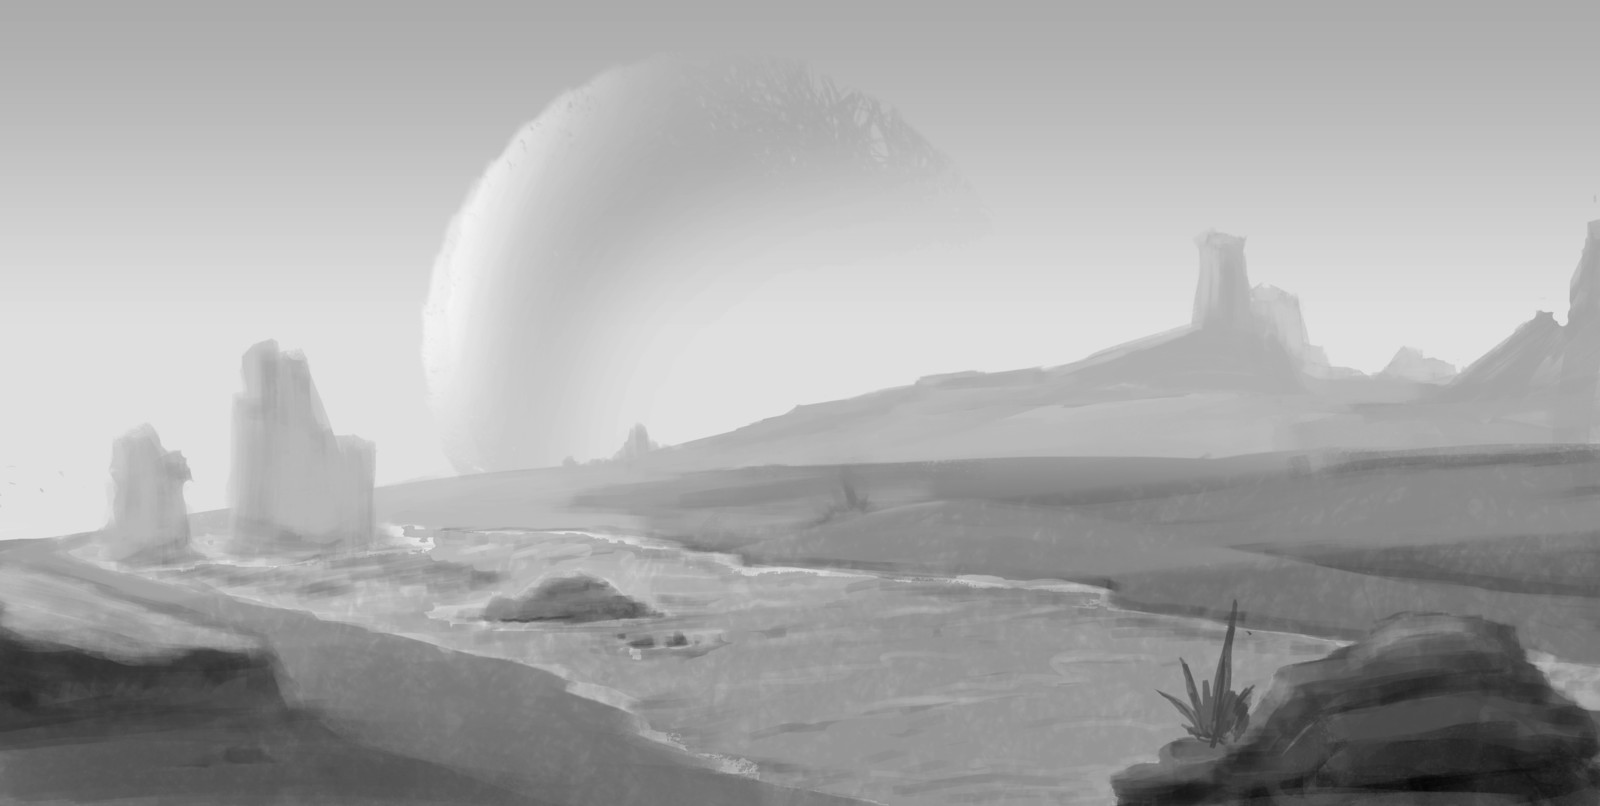 Distant Oasis  -  An imaginative environment value study.   water will flow through the most punishing terrains.